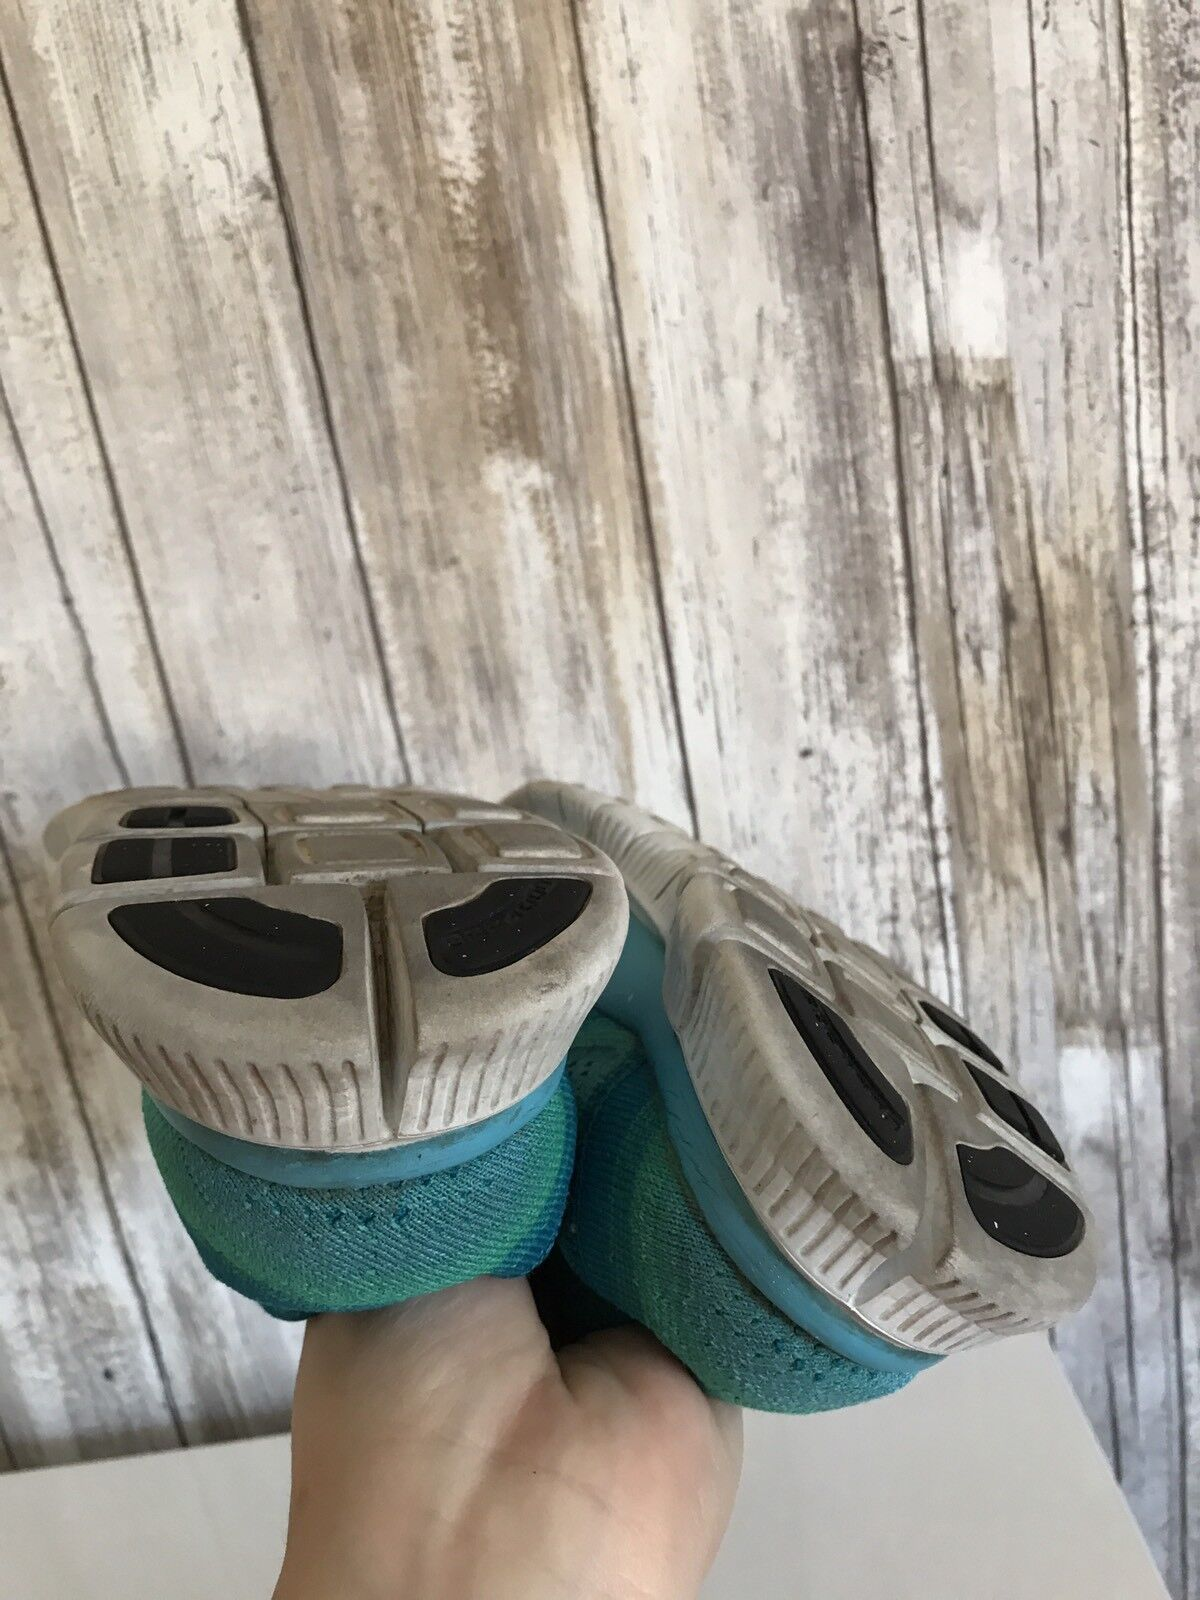 NIKE Free Free Free Run 5.0 Flyknit Running Sneaker shoes 7.5 Teal bluee Turquoise 23439a